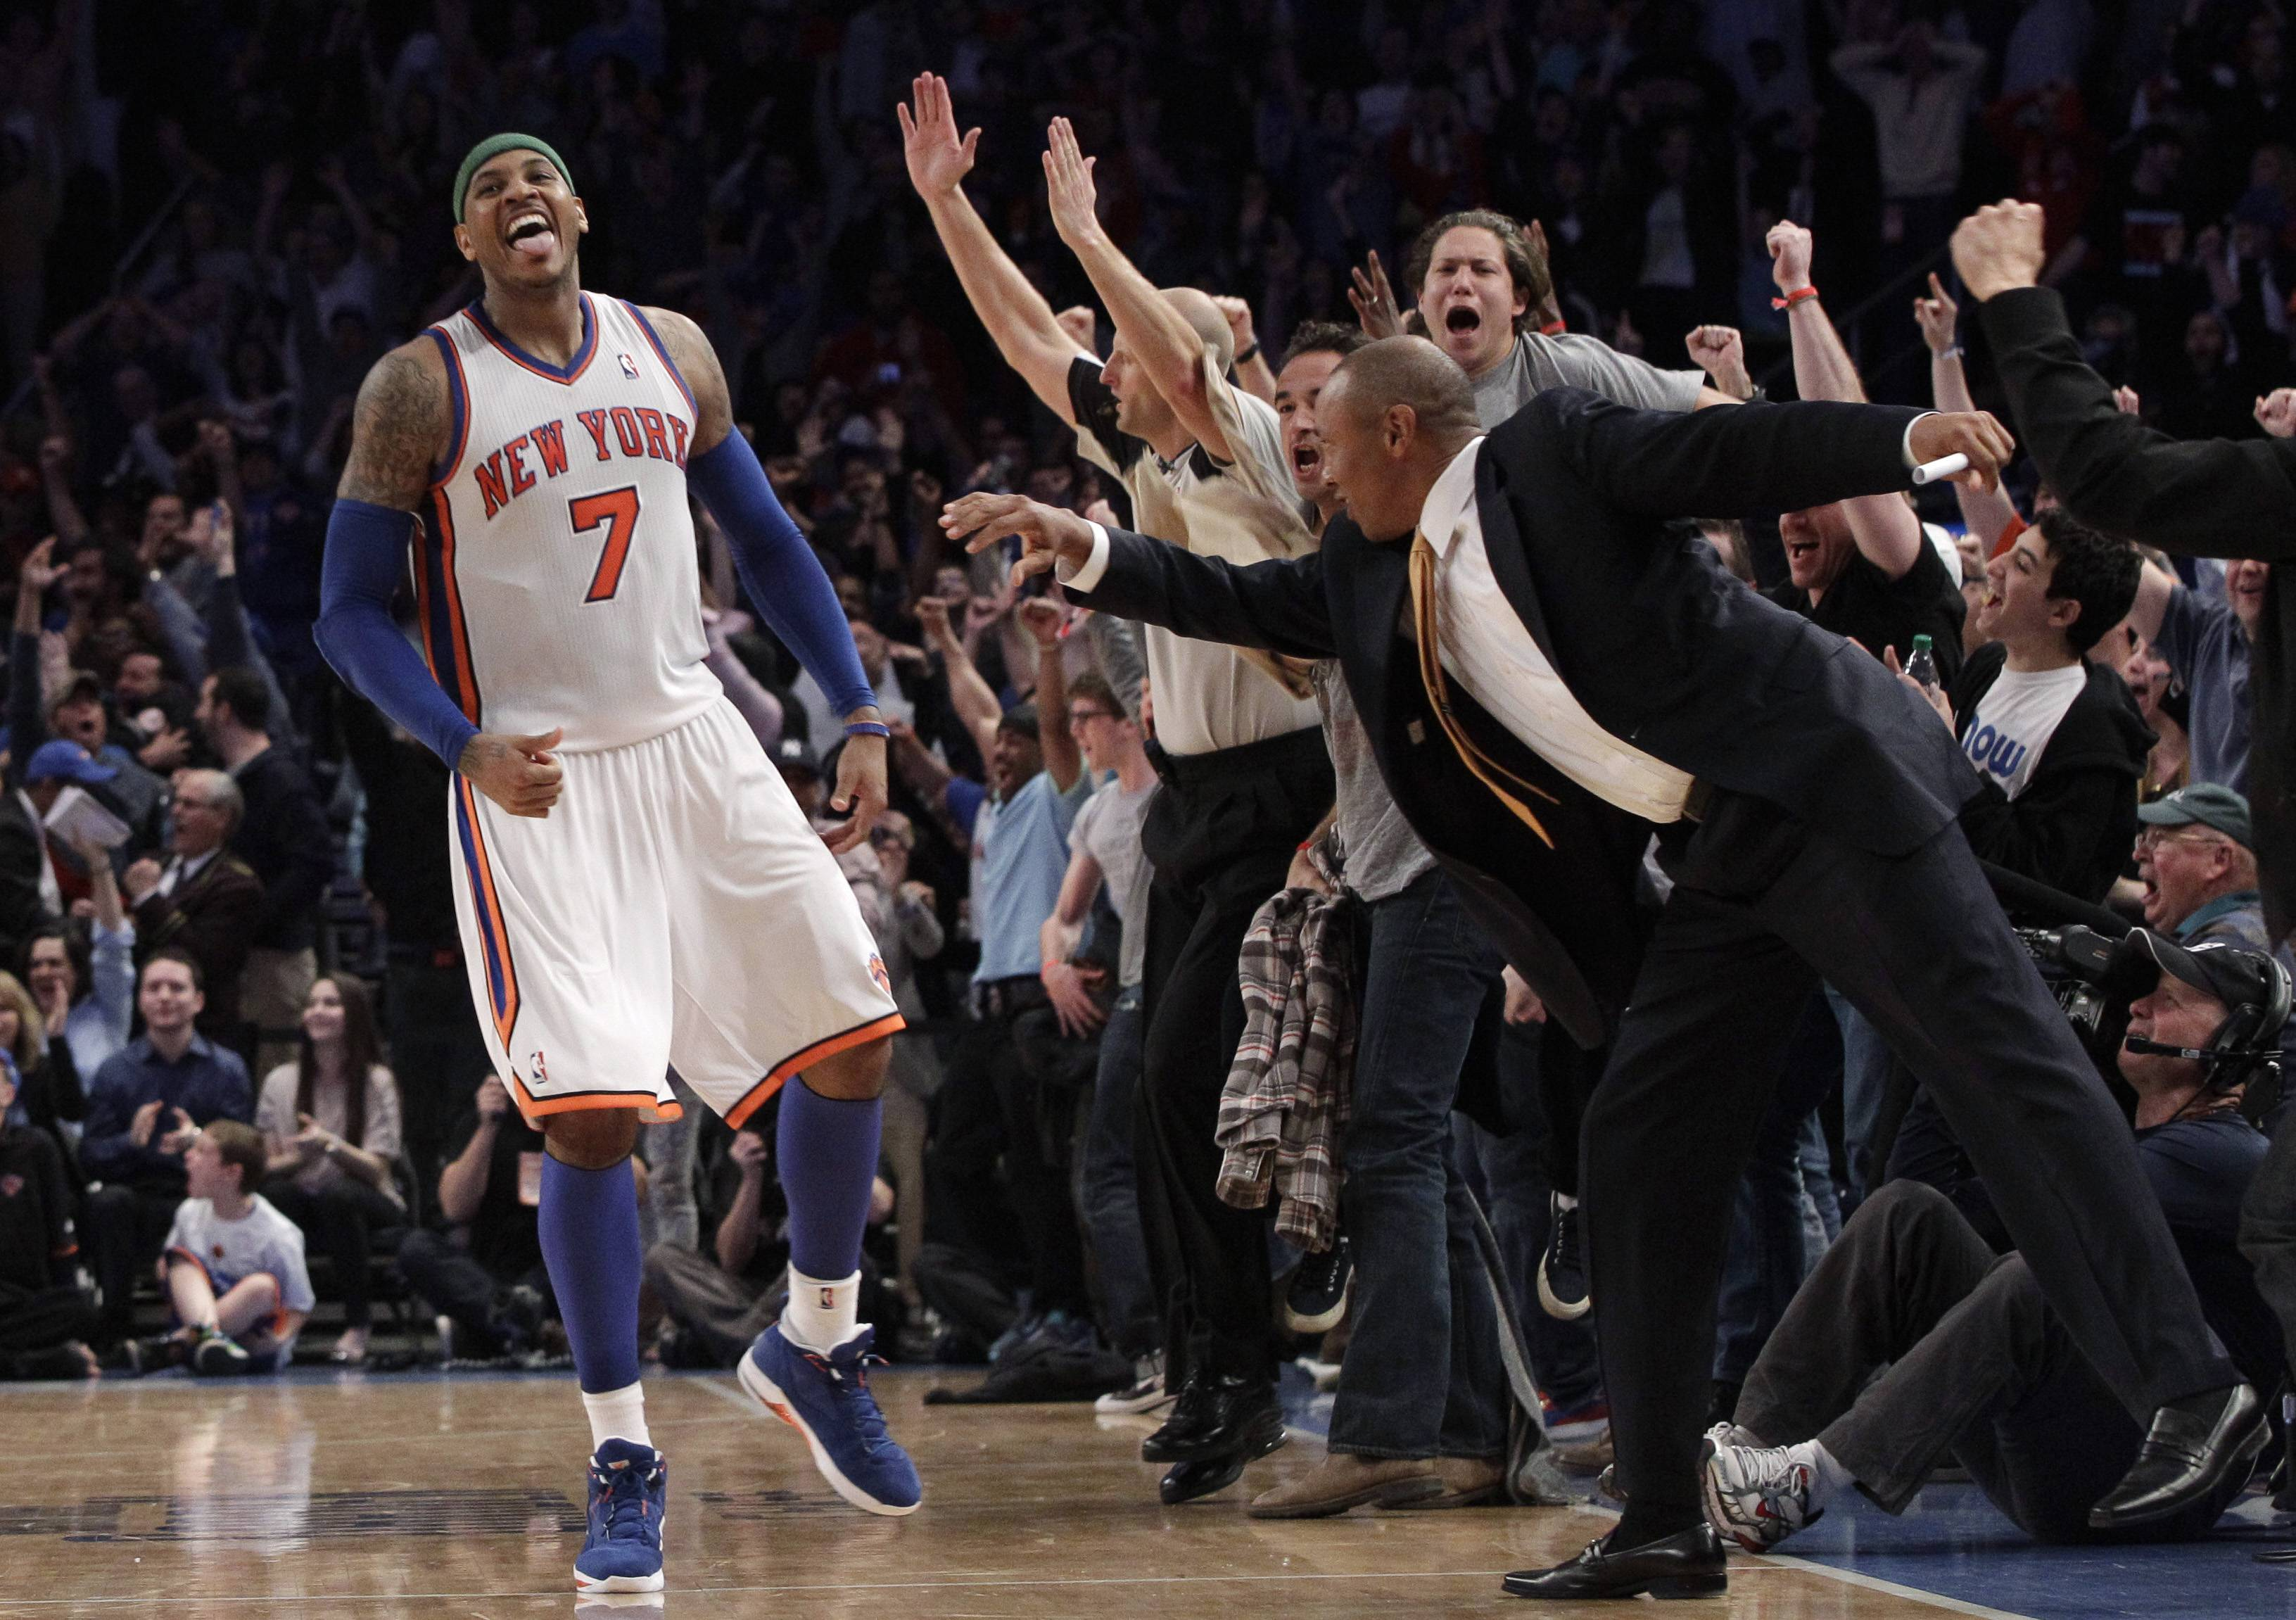 Bulls blow late lead, fall to Knicks